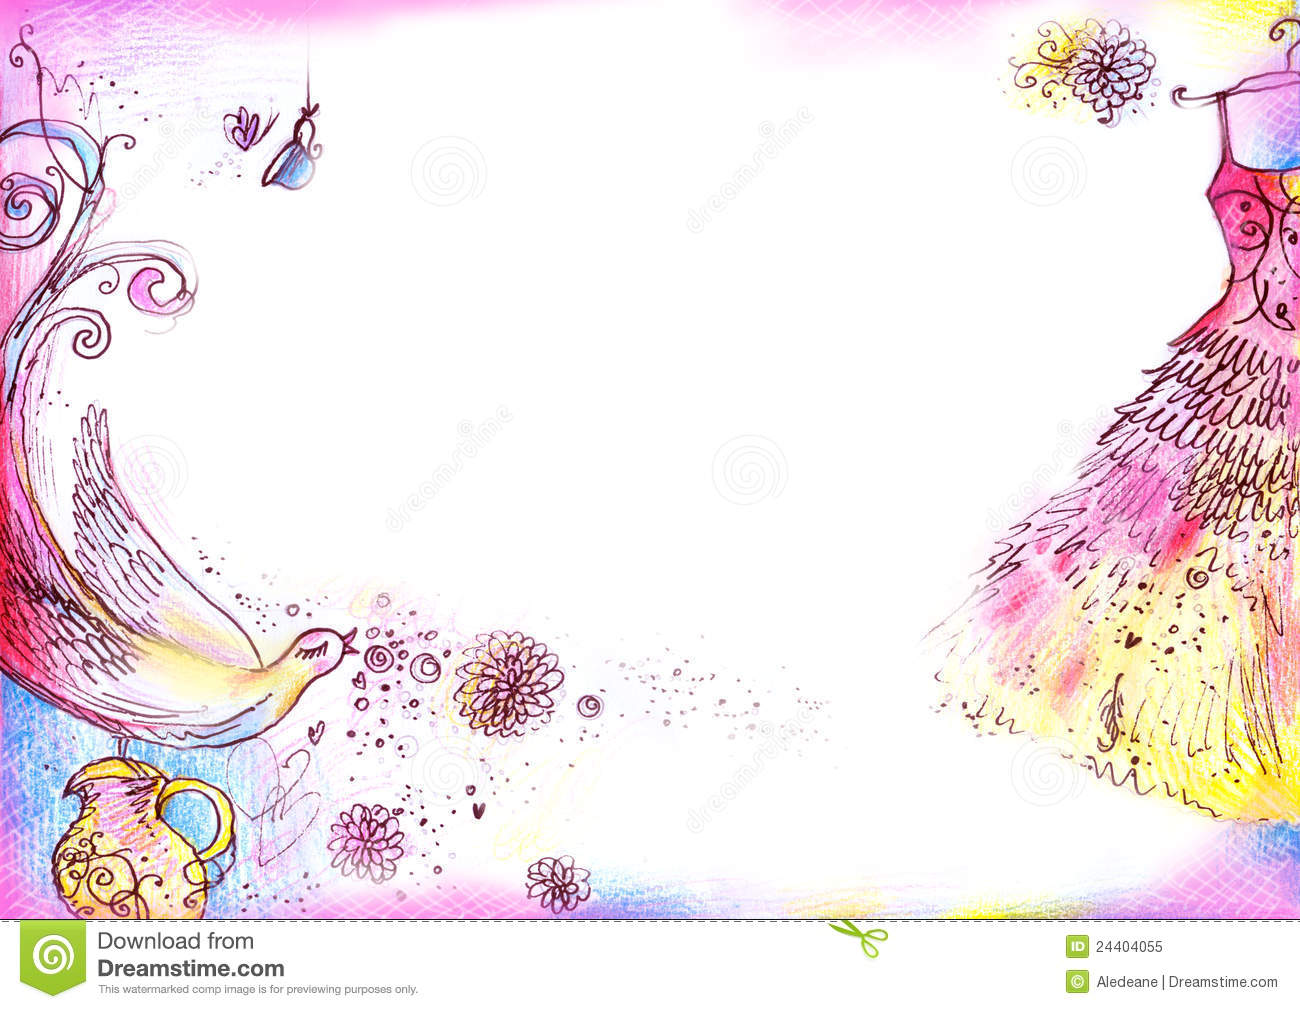 A4 sized background with whimsical romantic drawings created with